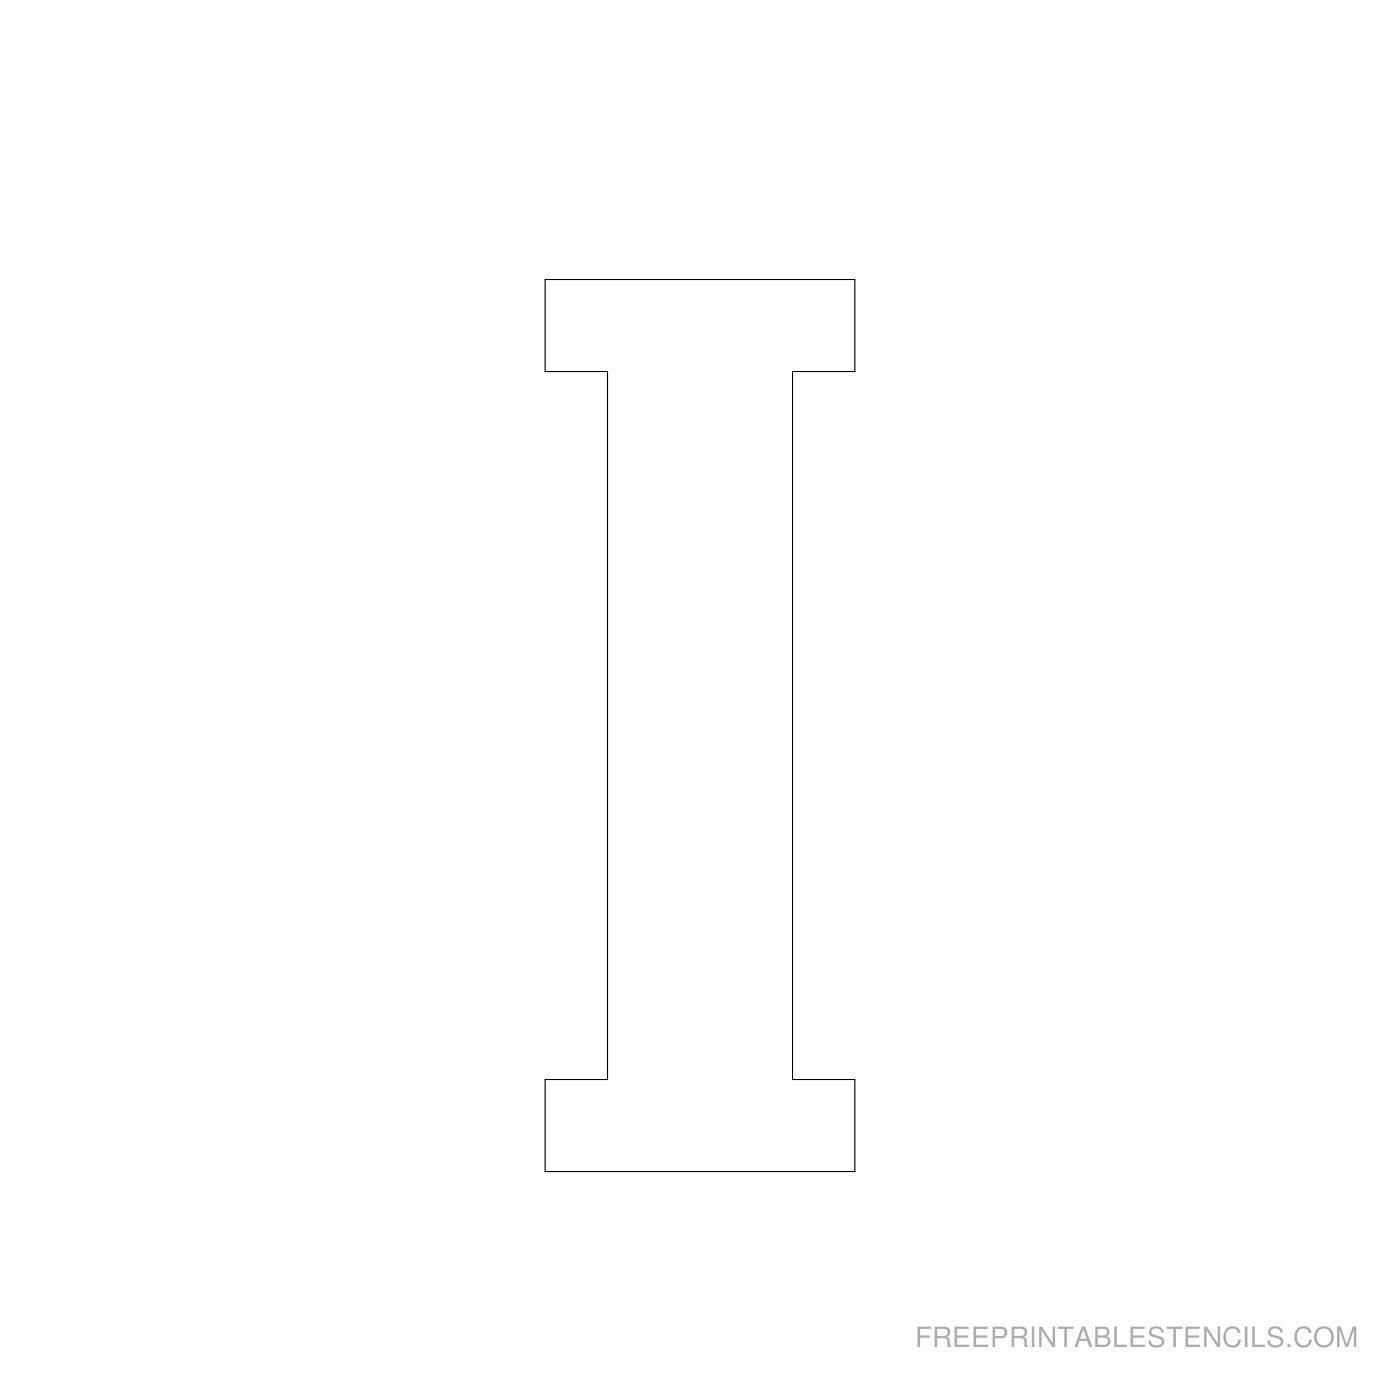 Printable 4 Inch Letter Stencils A-Z | Free Printable Stencils - Free Printable 4 Inch Block Letters